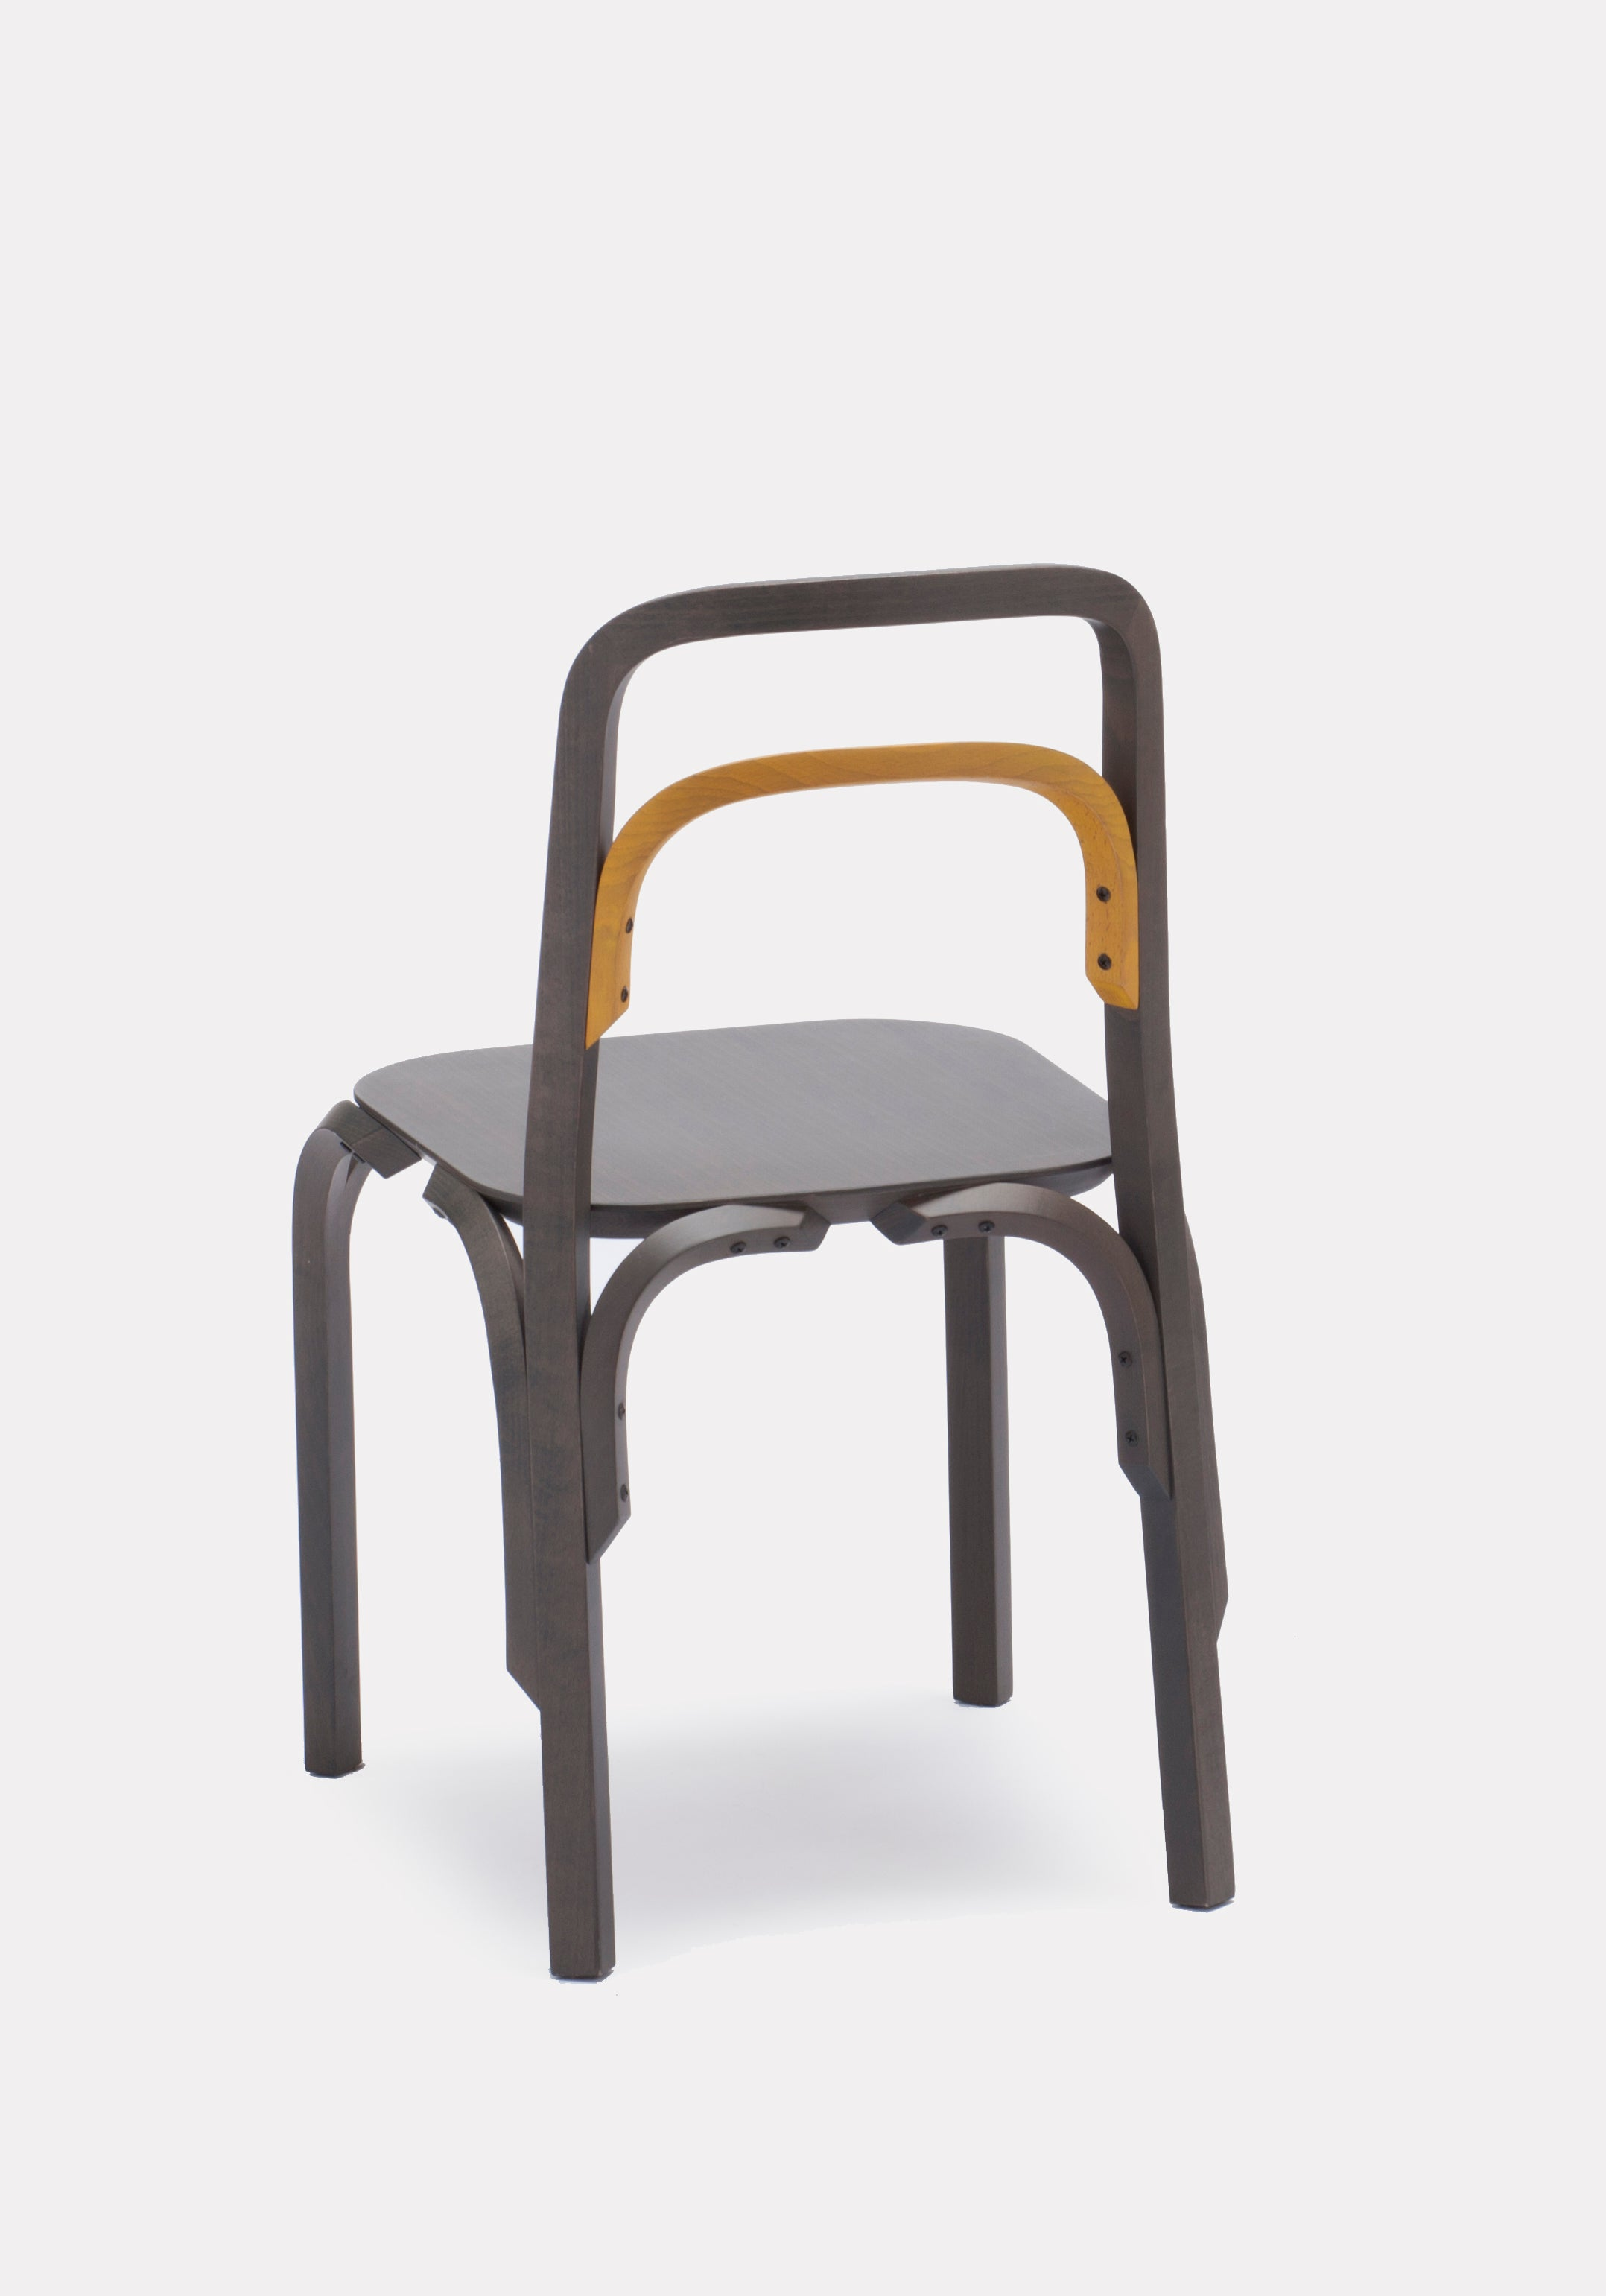 Sessel Up 2000 Established Sons Sessel Chair In Gray Beech With Yellow Back By Martino Gamper